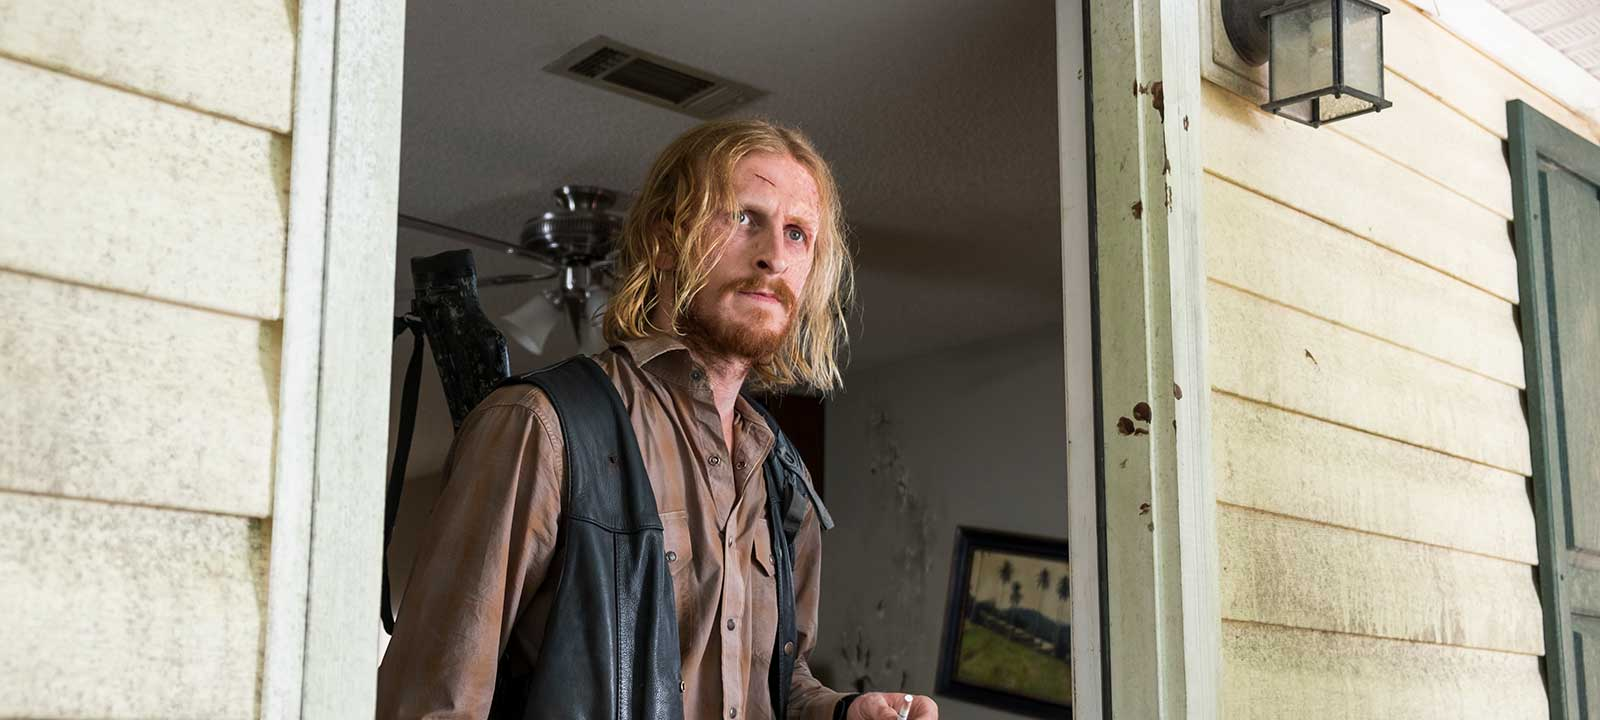 the-walking-dead-episode-711-dwight-amelio-800×600-interview